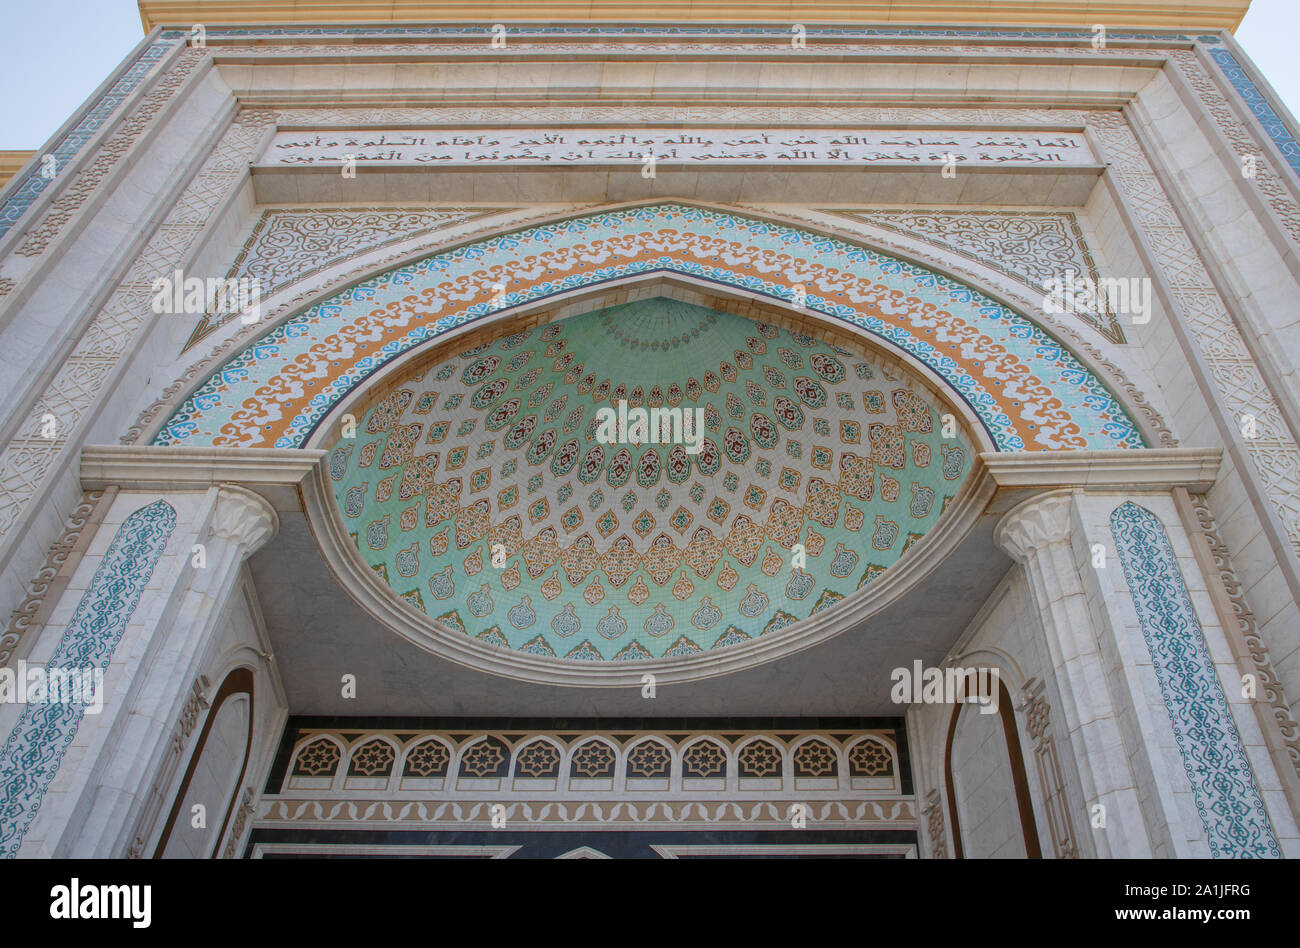 the hazret sultan mosque entrance  in independence square astana or nul sultan kazakhstan Stock Photo